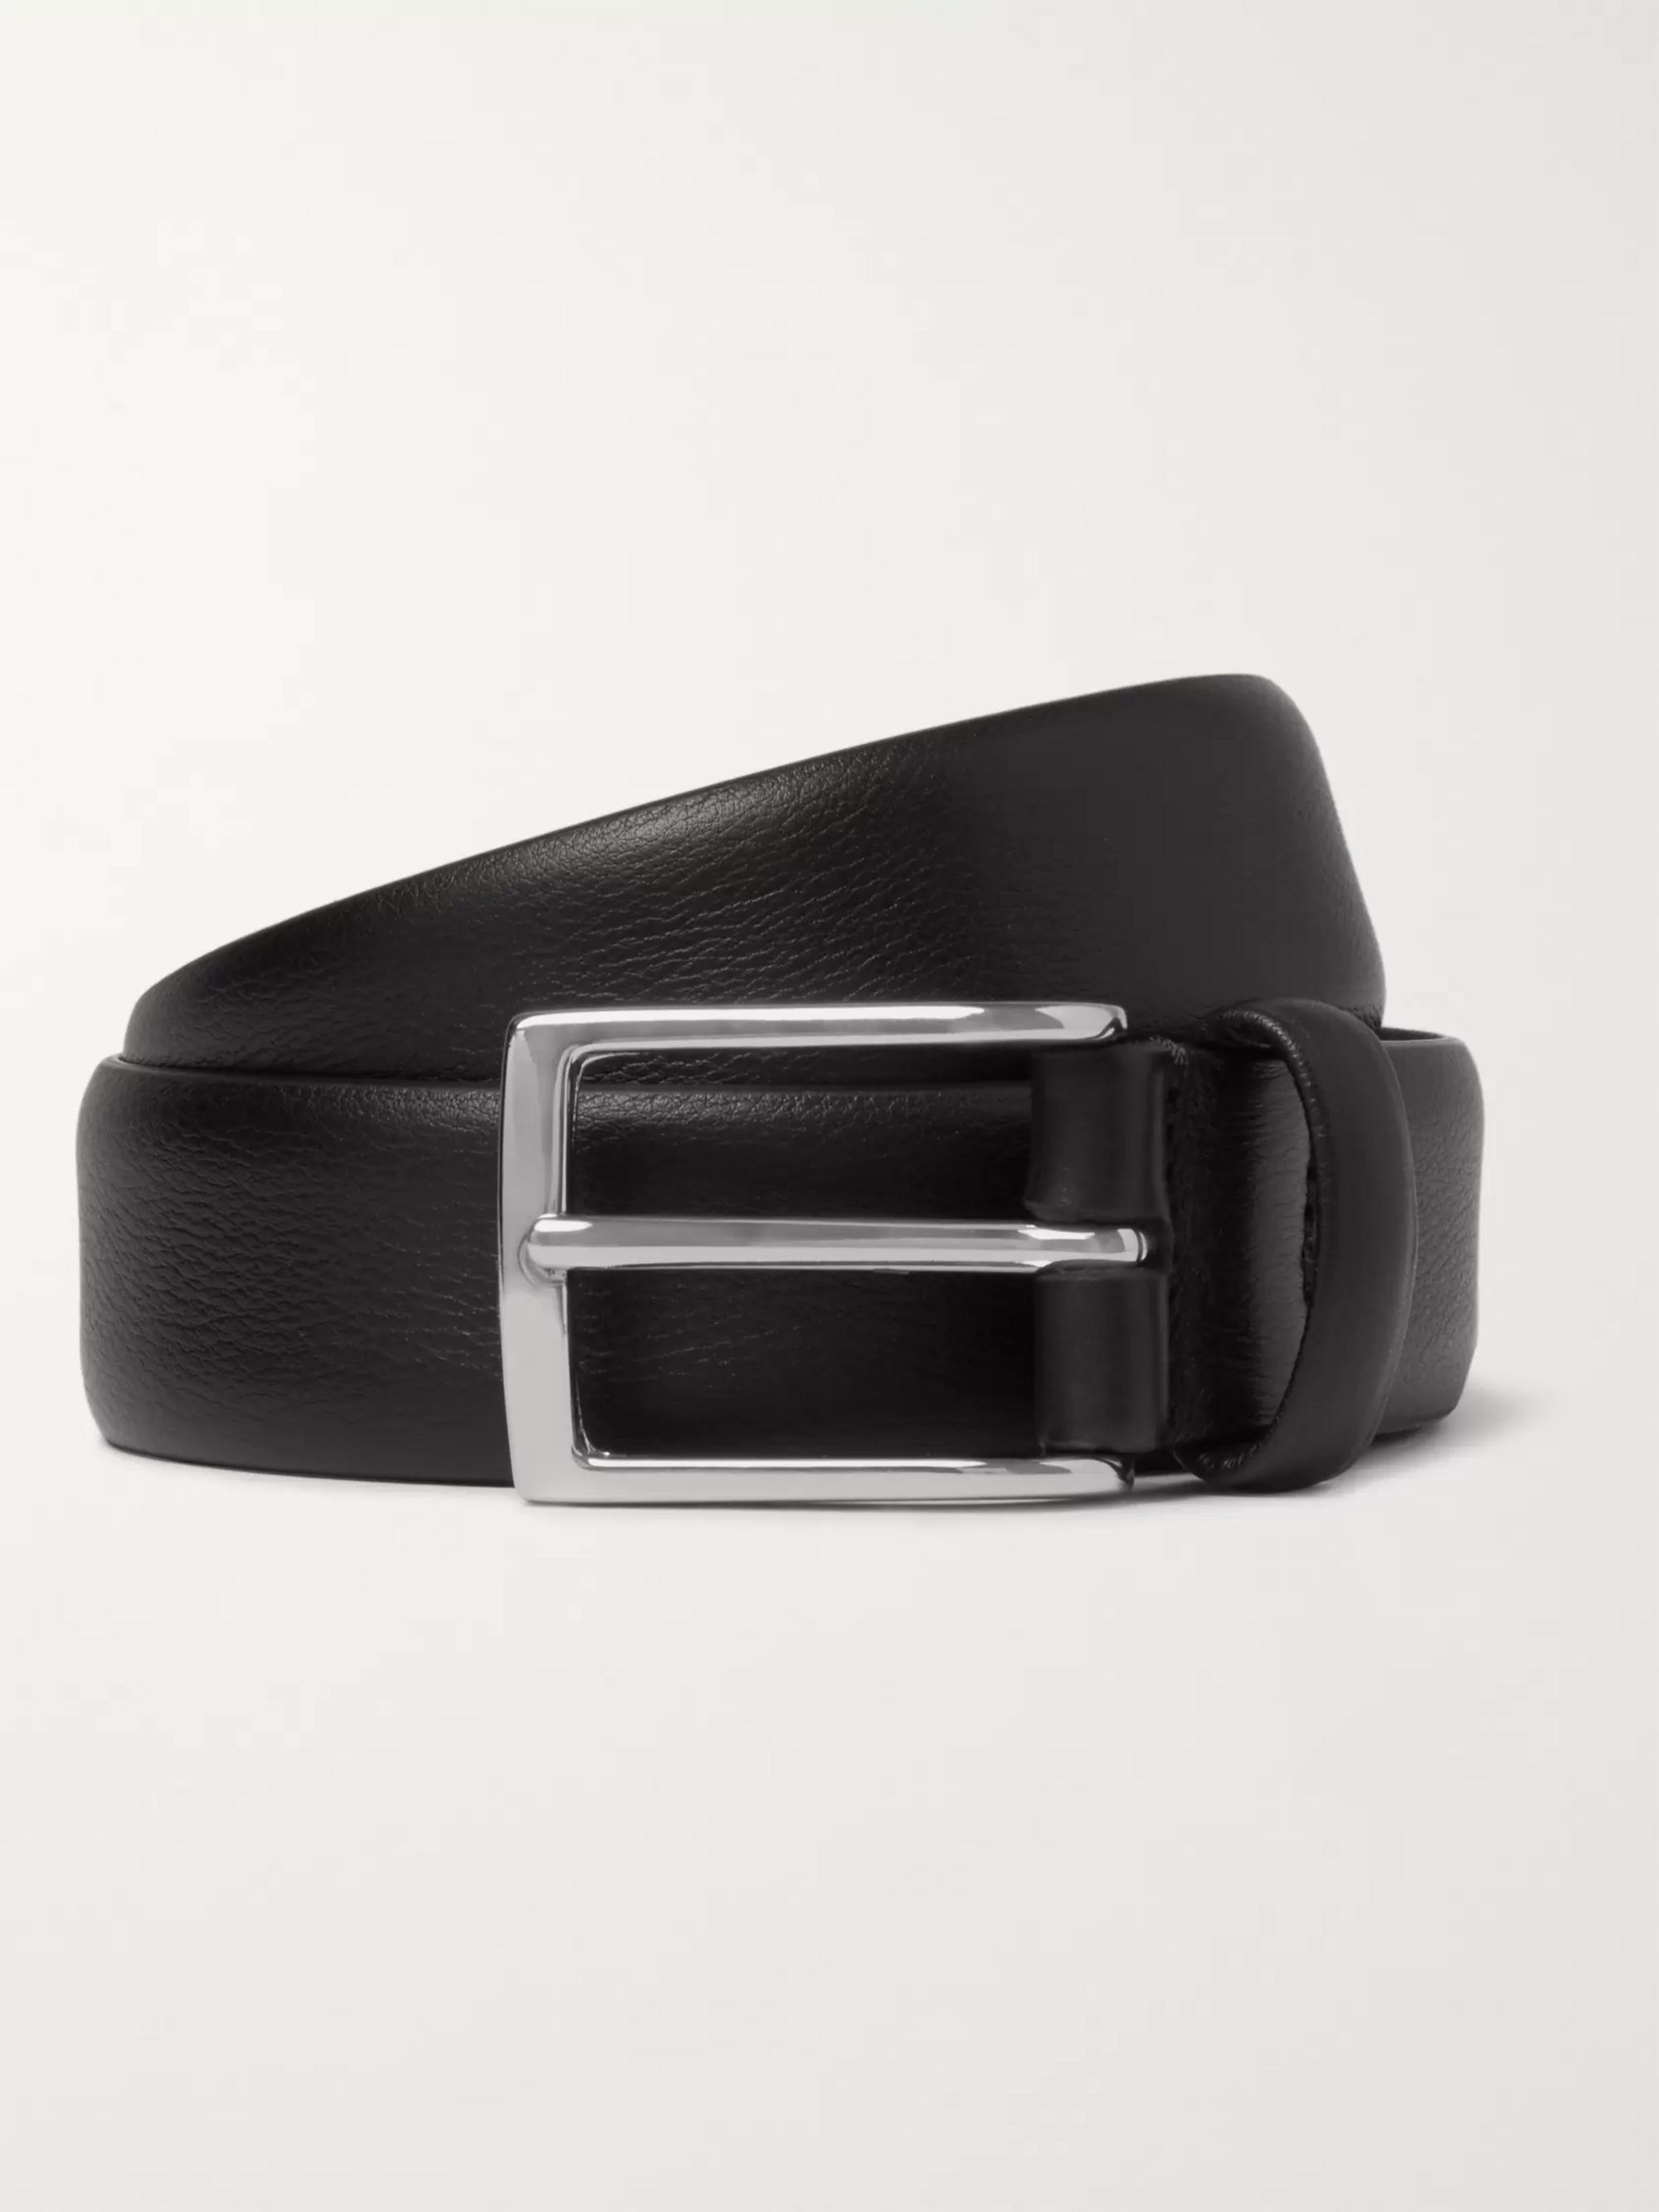 Anderson's 3cm Black Leather Belt